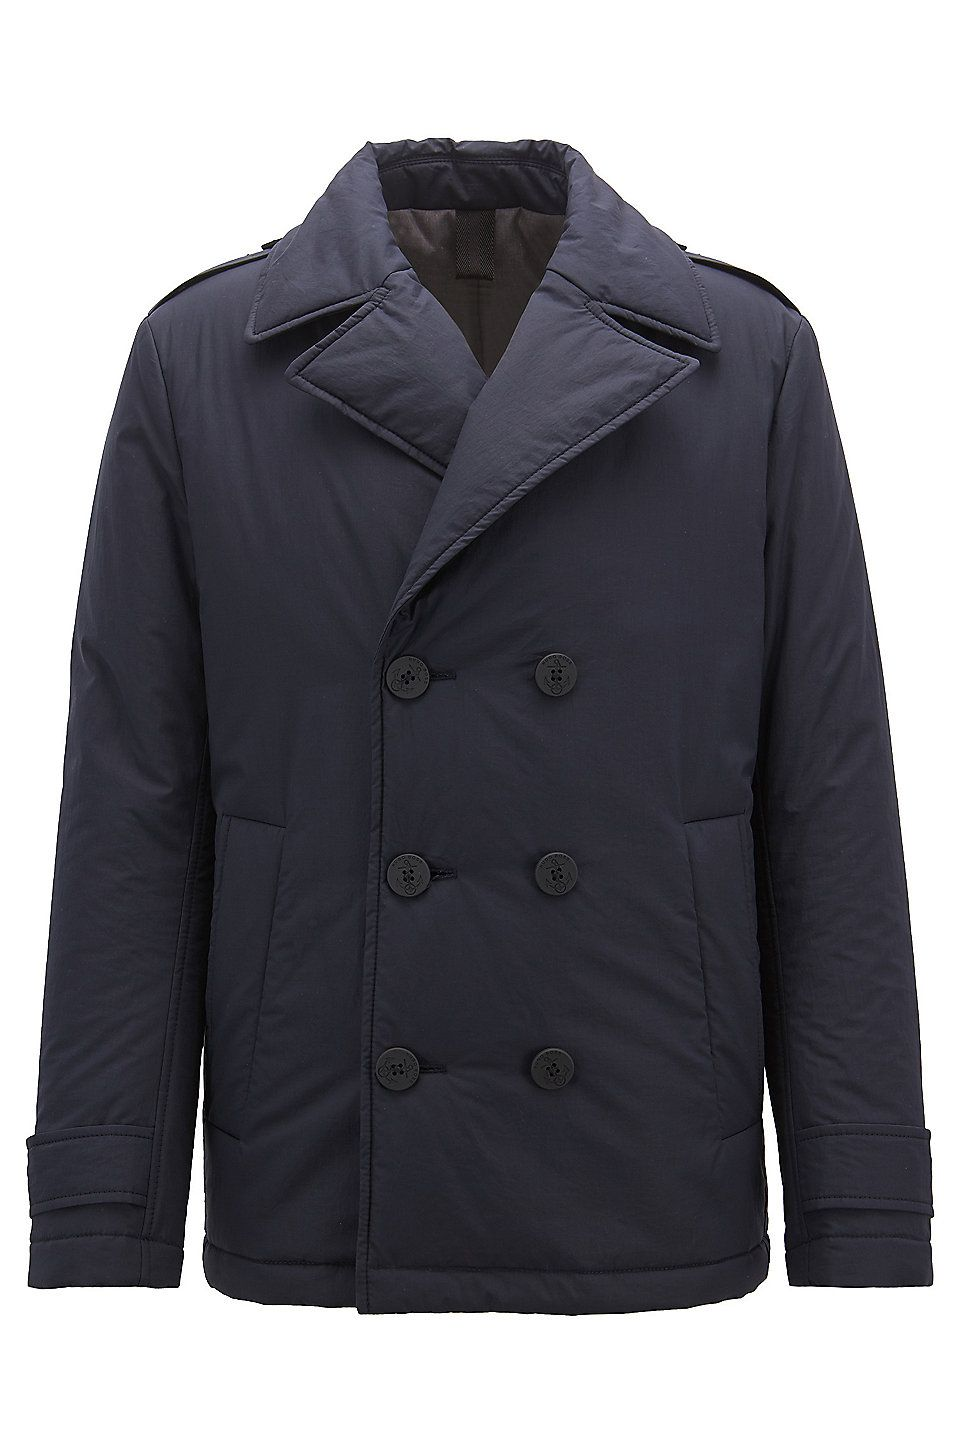 592e84a17931 HUGO BOSS Caban coat in waxed cotton with PrimaLoft® insulation - Dark Blue Casual  Coats from BOSS for Men in the official HUGO BOSS Online Store free ...